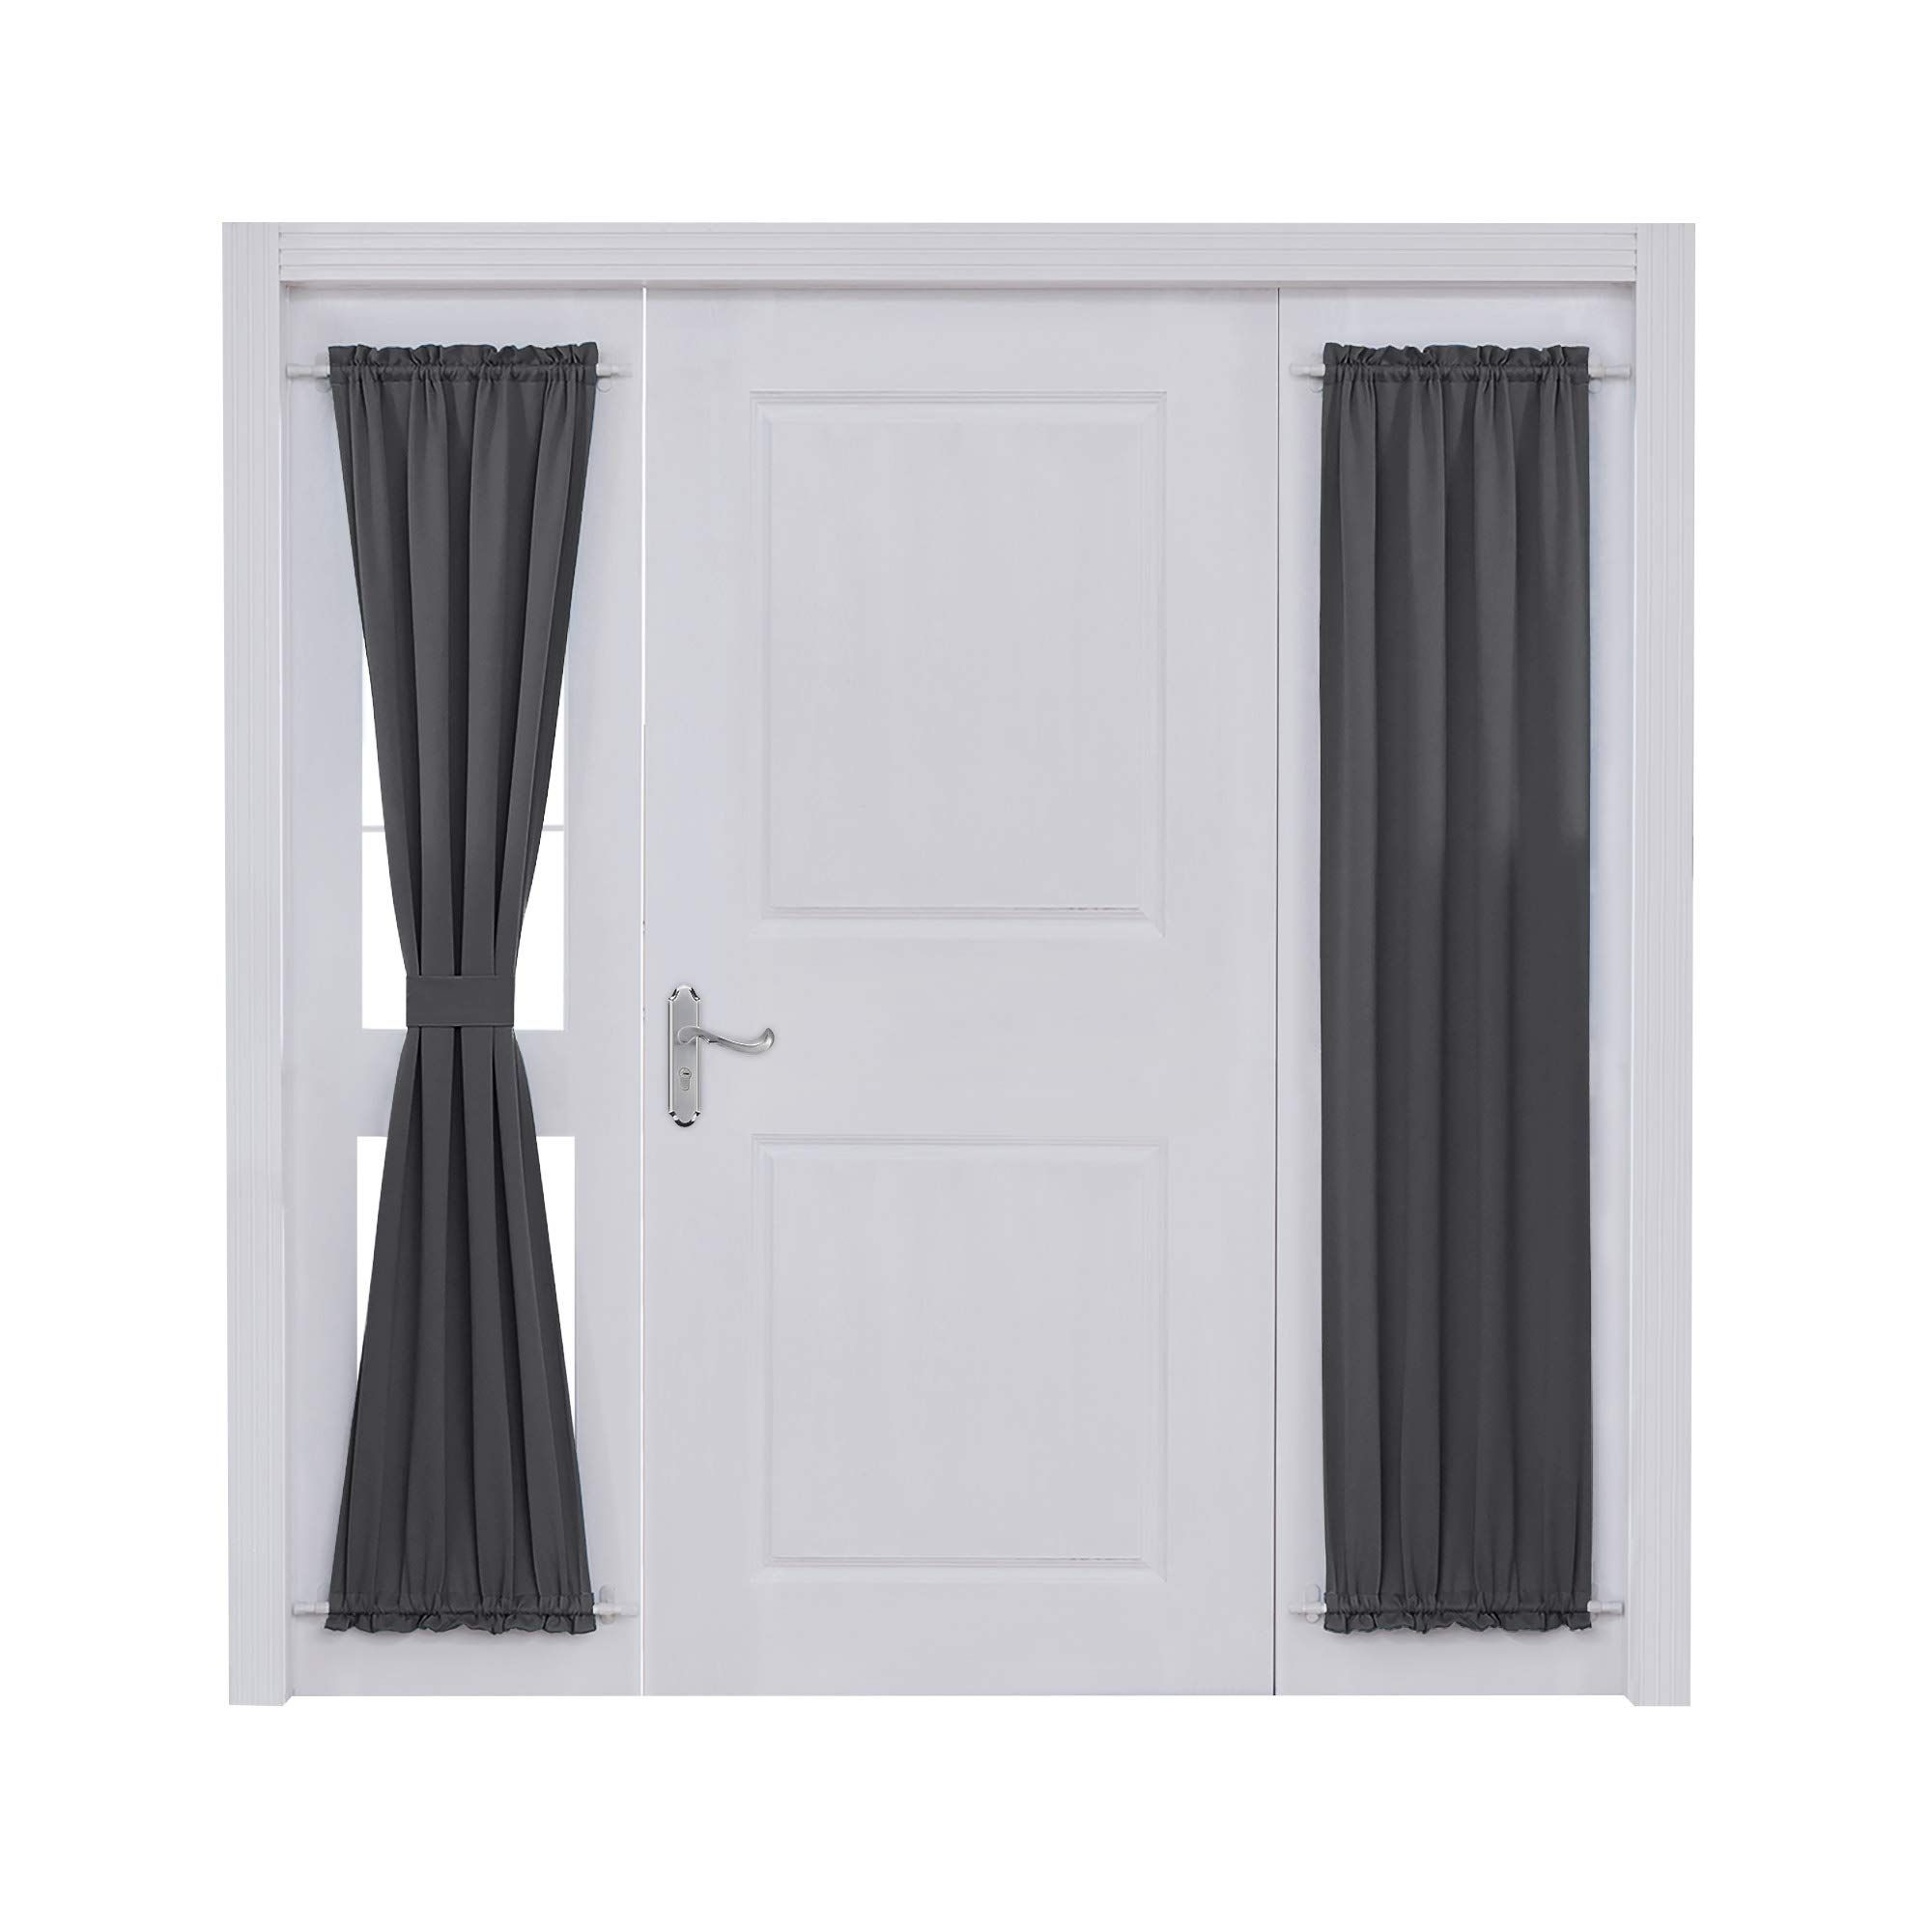 Deconovo Rod Pocket Door Panel Curtain Thermal Insulated Curtains